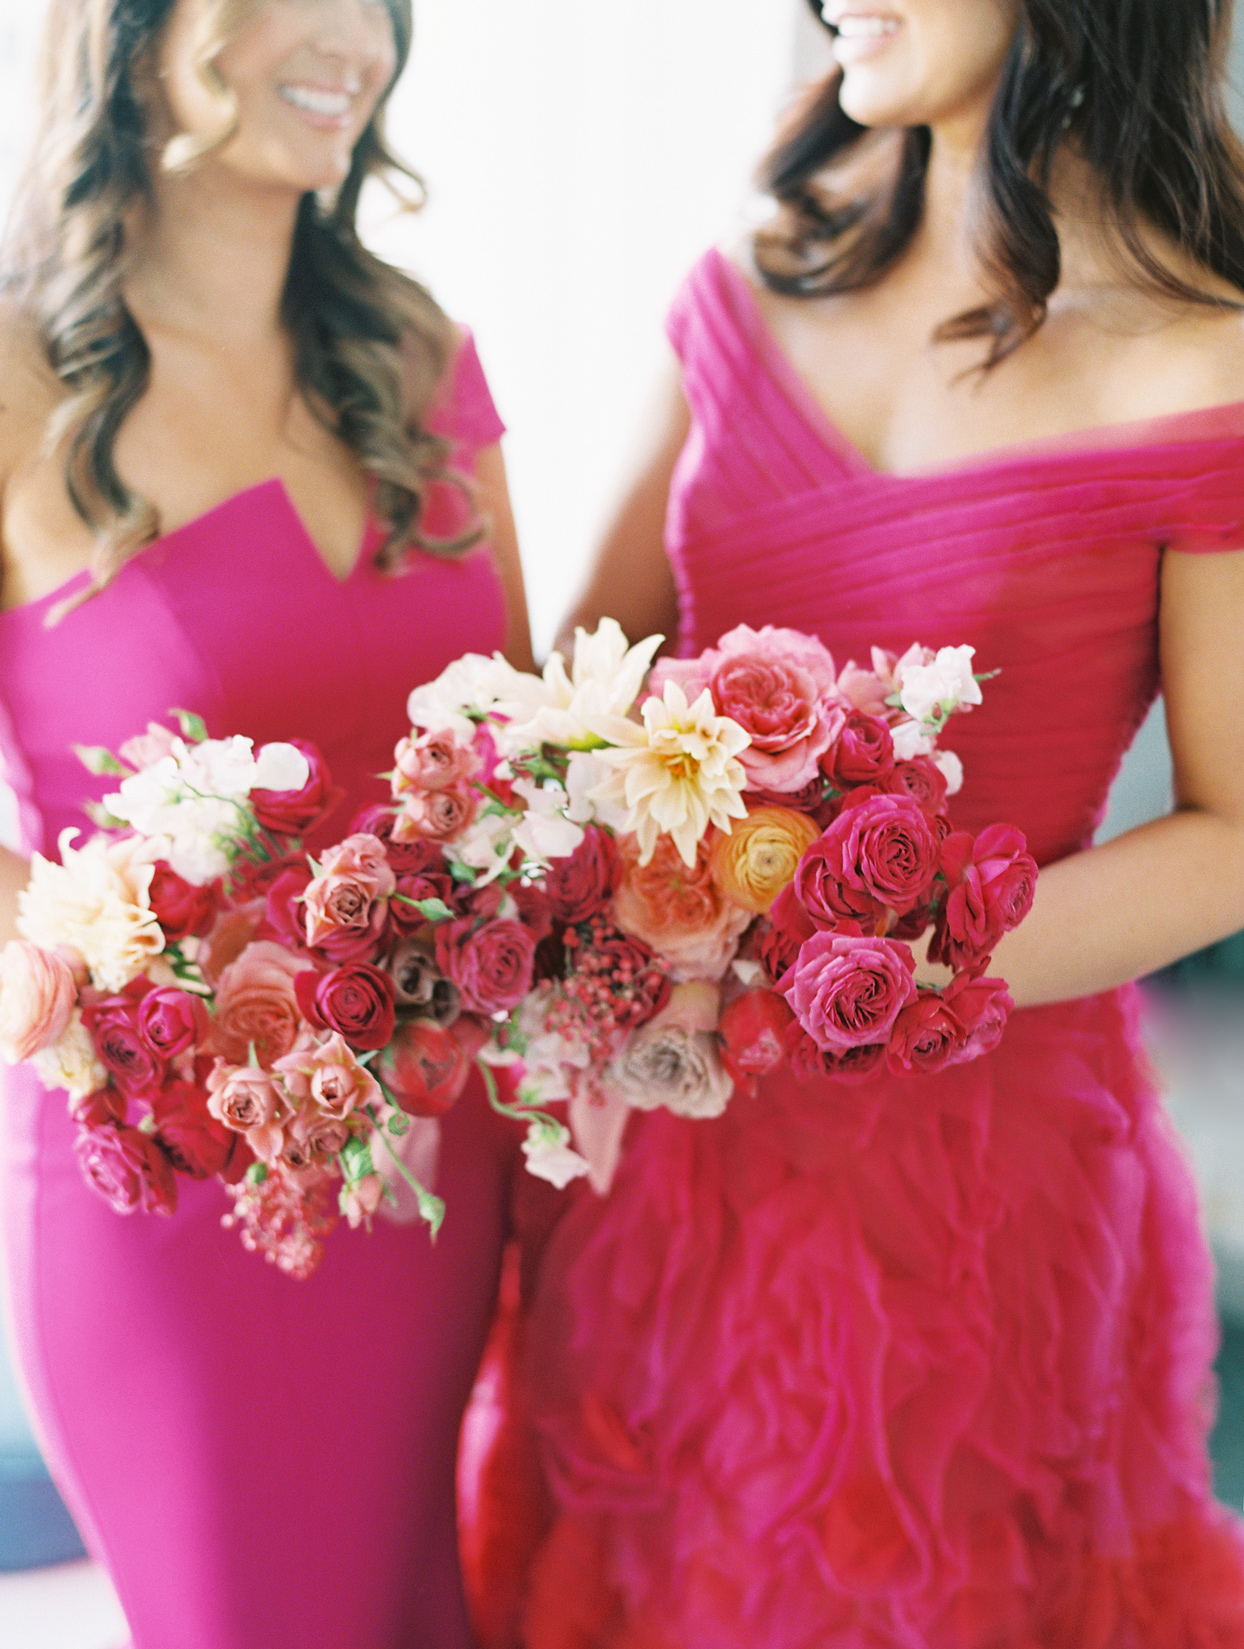 two bridesmaids holding red and pink floral bouquets with matching red and pink dresses